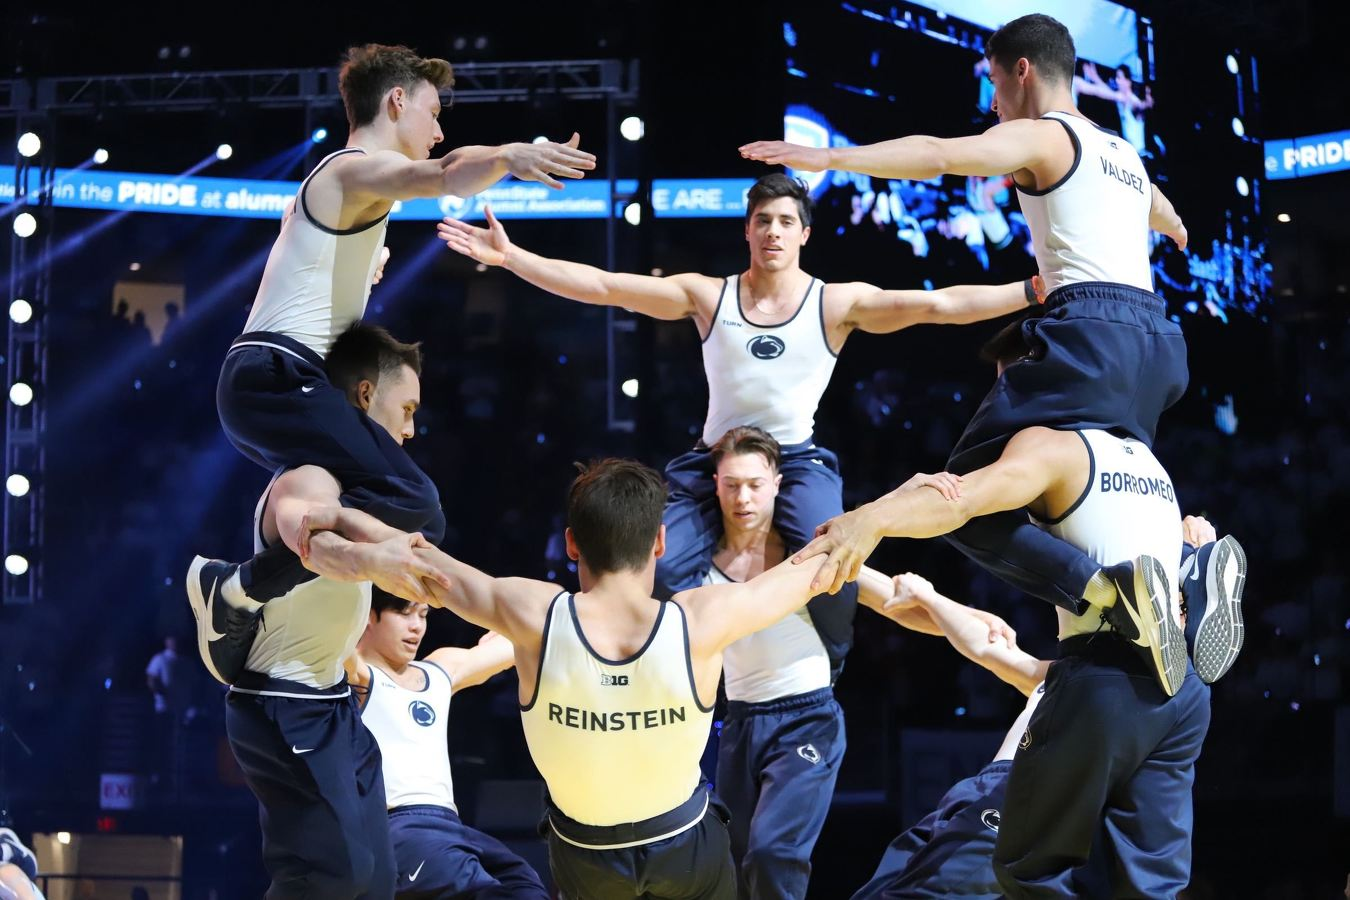 State College Pa Watch Penn State Men S Gymnastics Wins Again At Thon 2020 Pep Rally